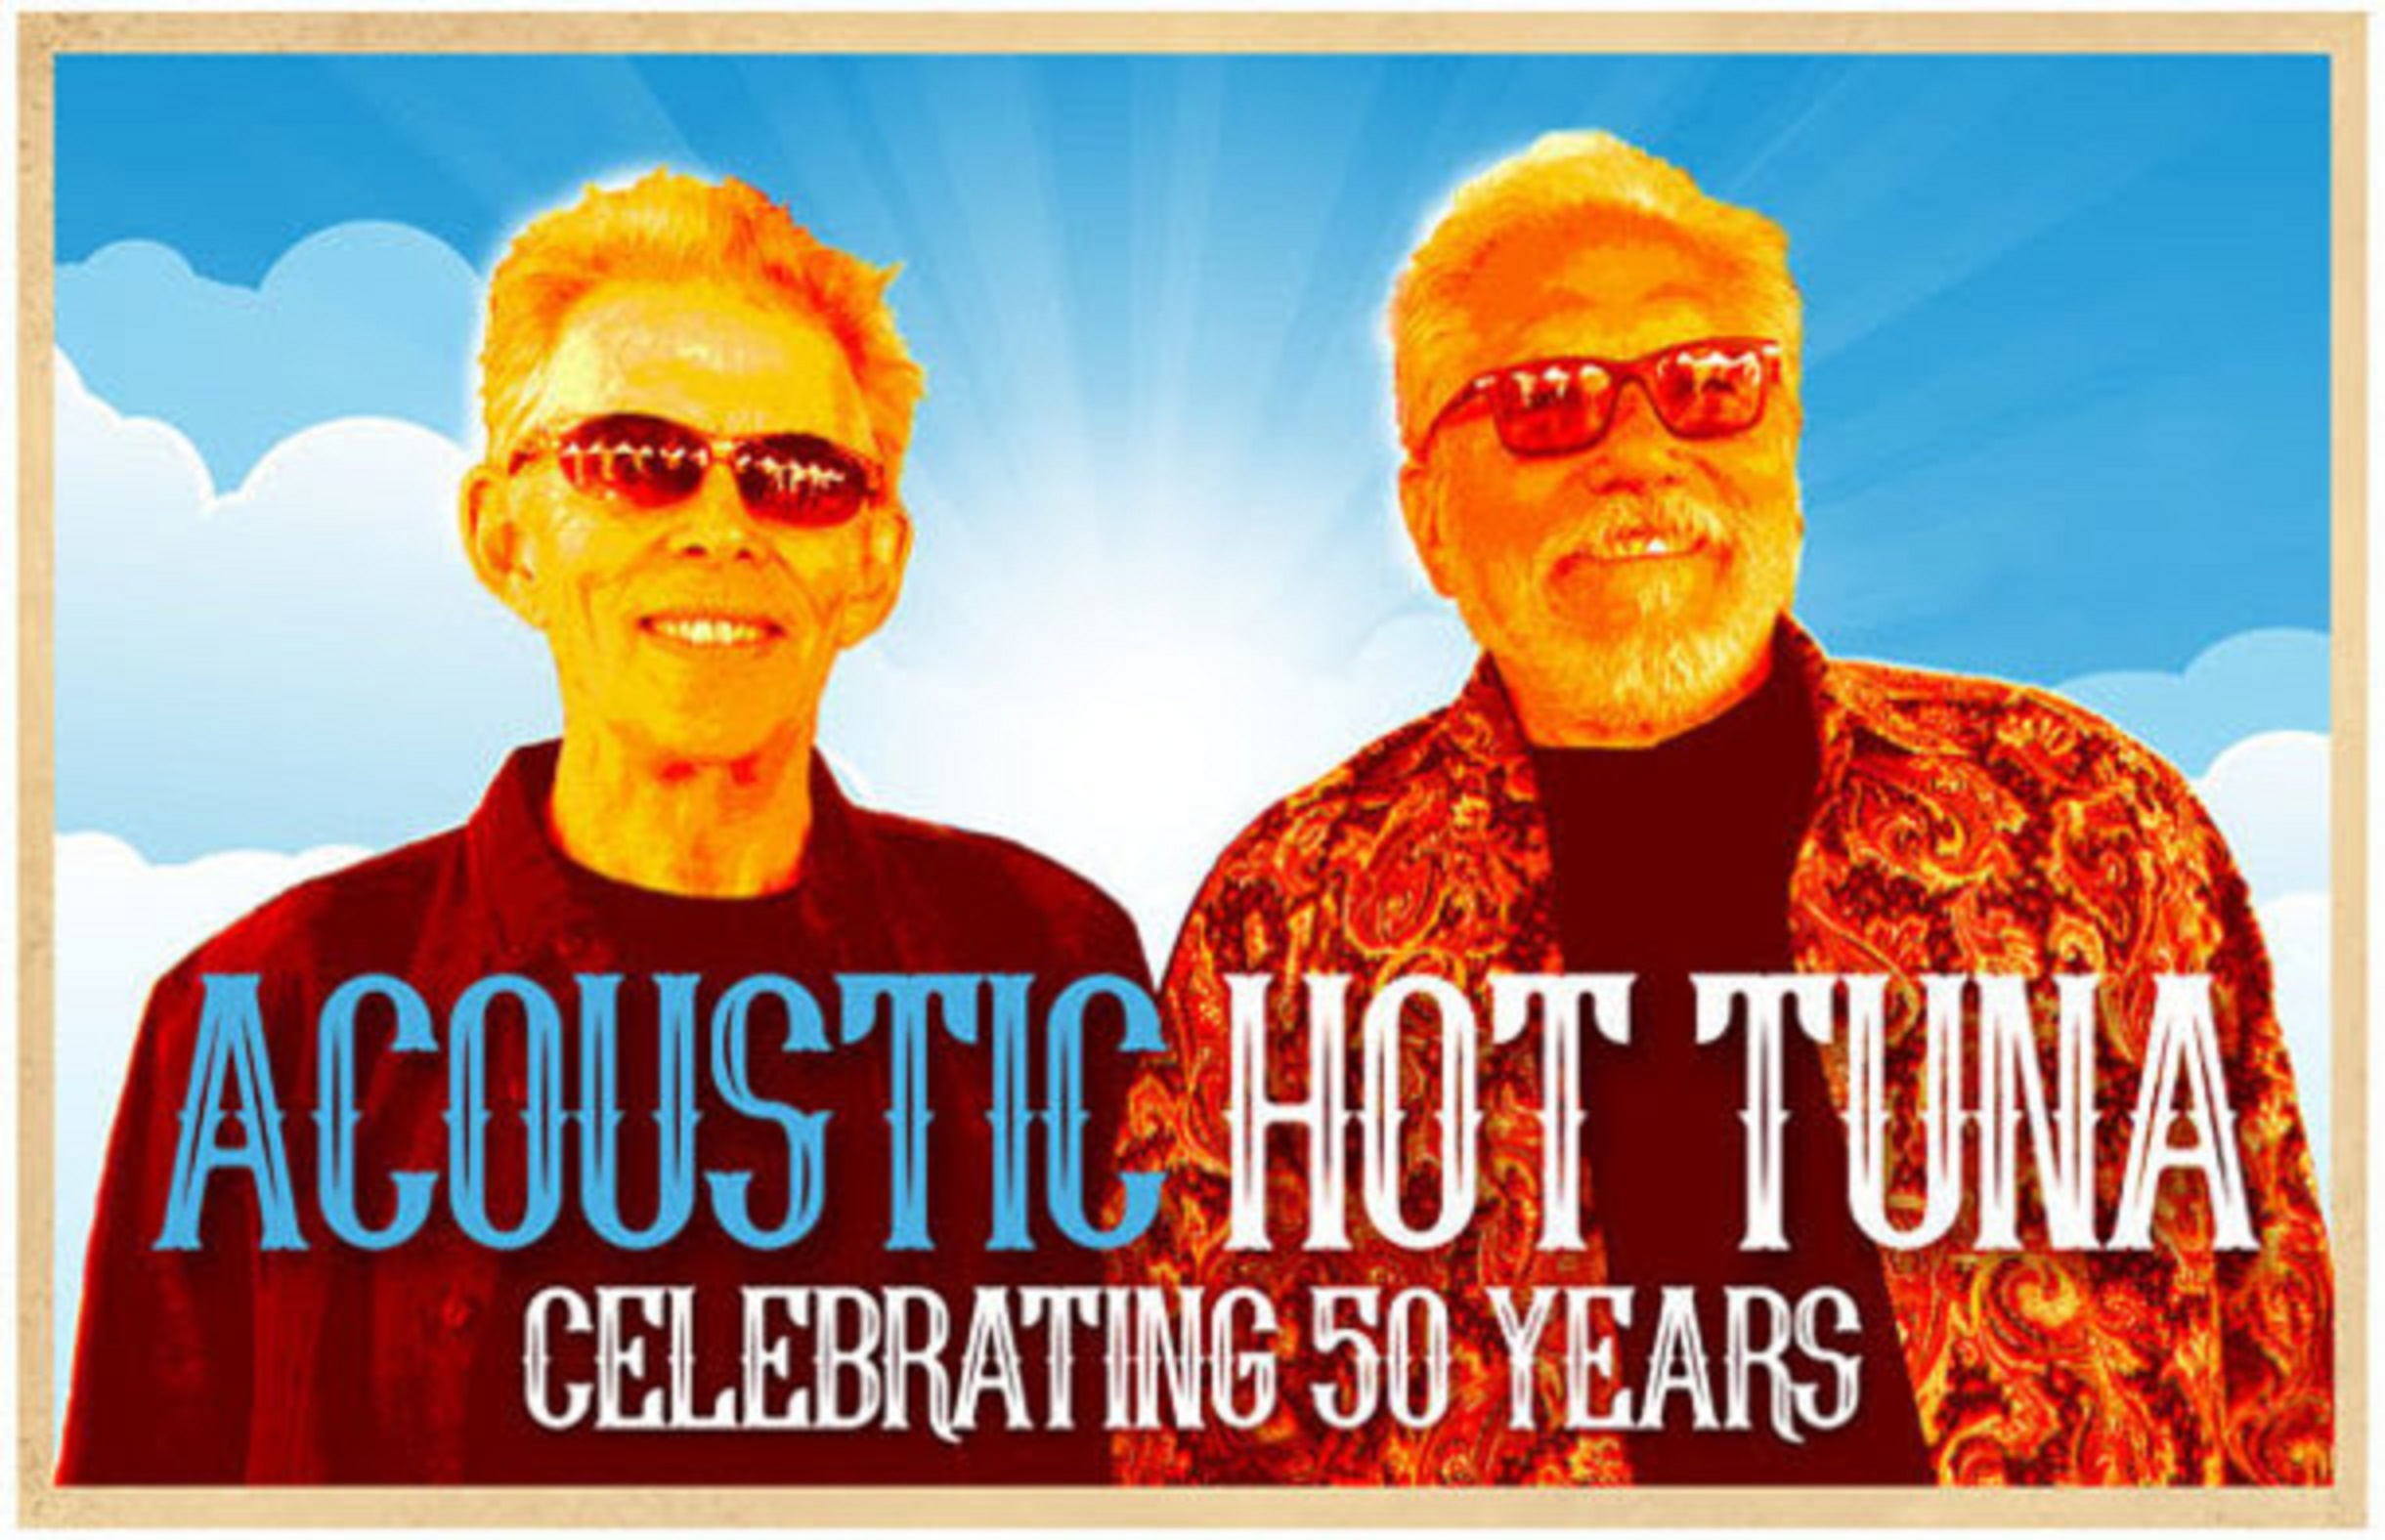 In Tune with The Rhythms of the World - Hot Tuna Celebrates 50 years